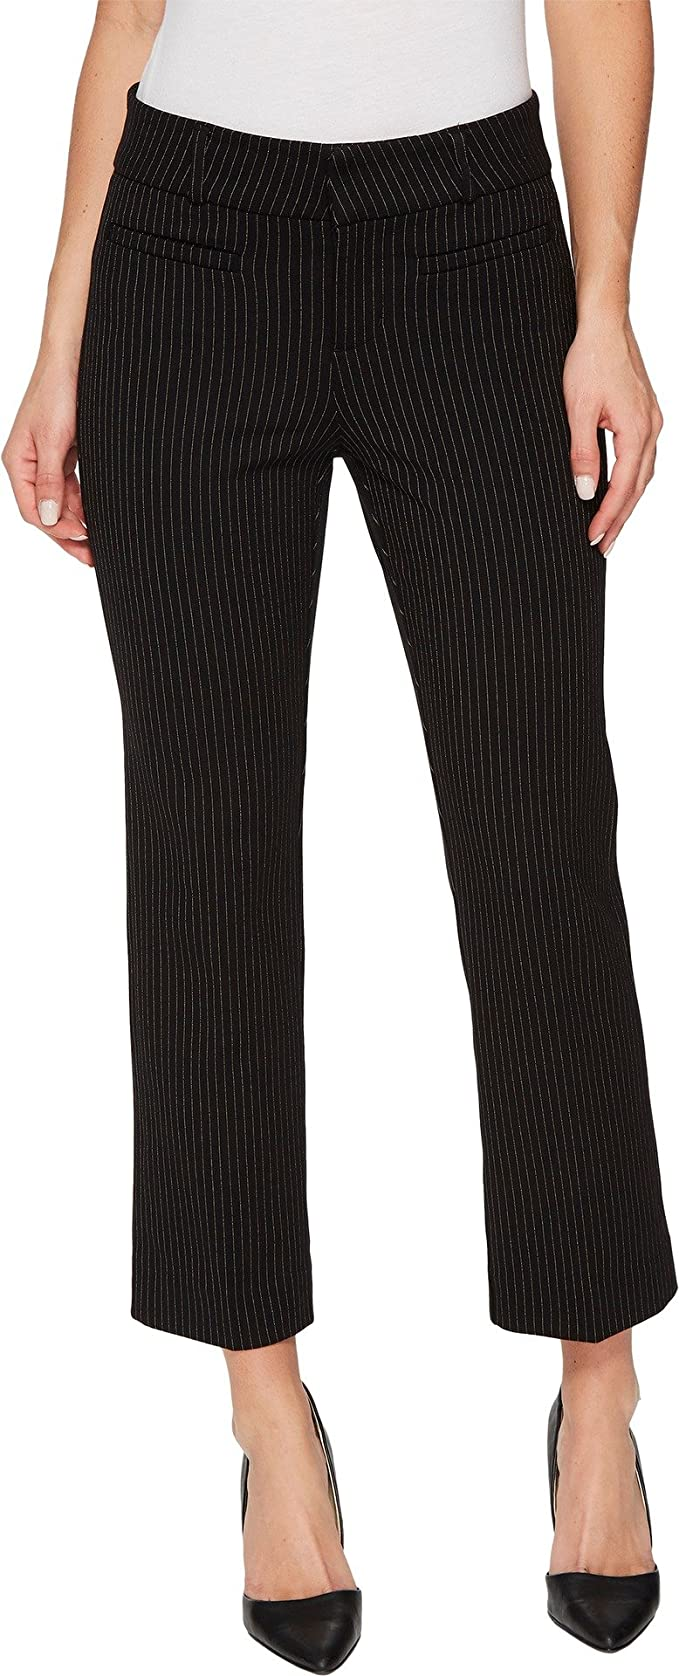 1adf2836add40 Liverpool Womens Vera Crop Flare Trousers with Welt Pockets in Mini Check  Ponte Knit